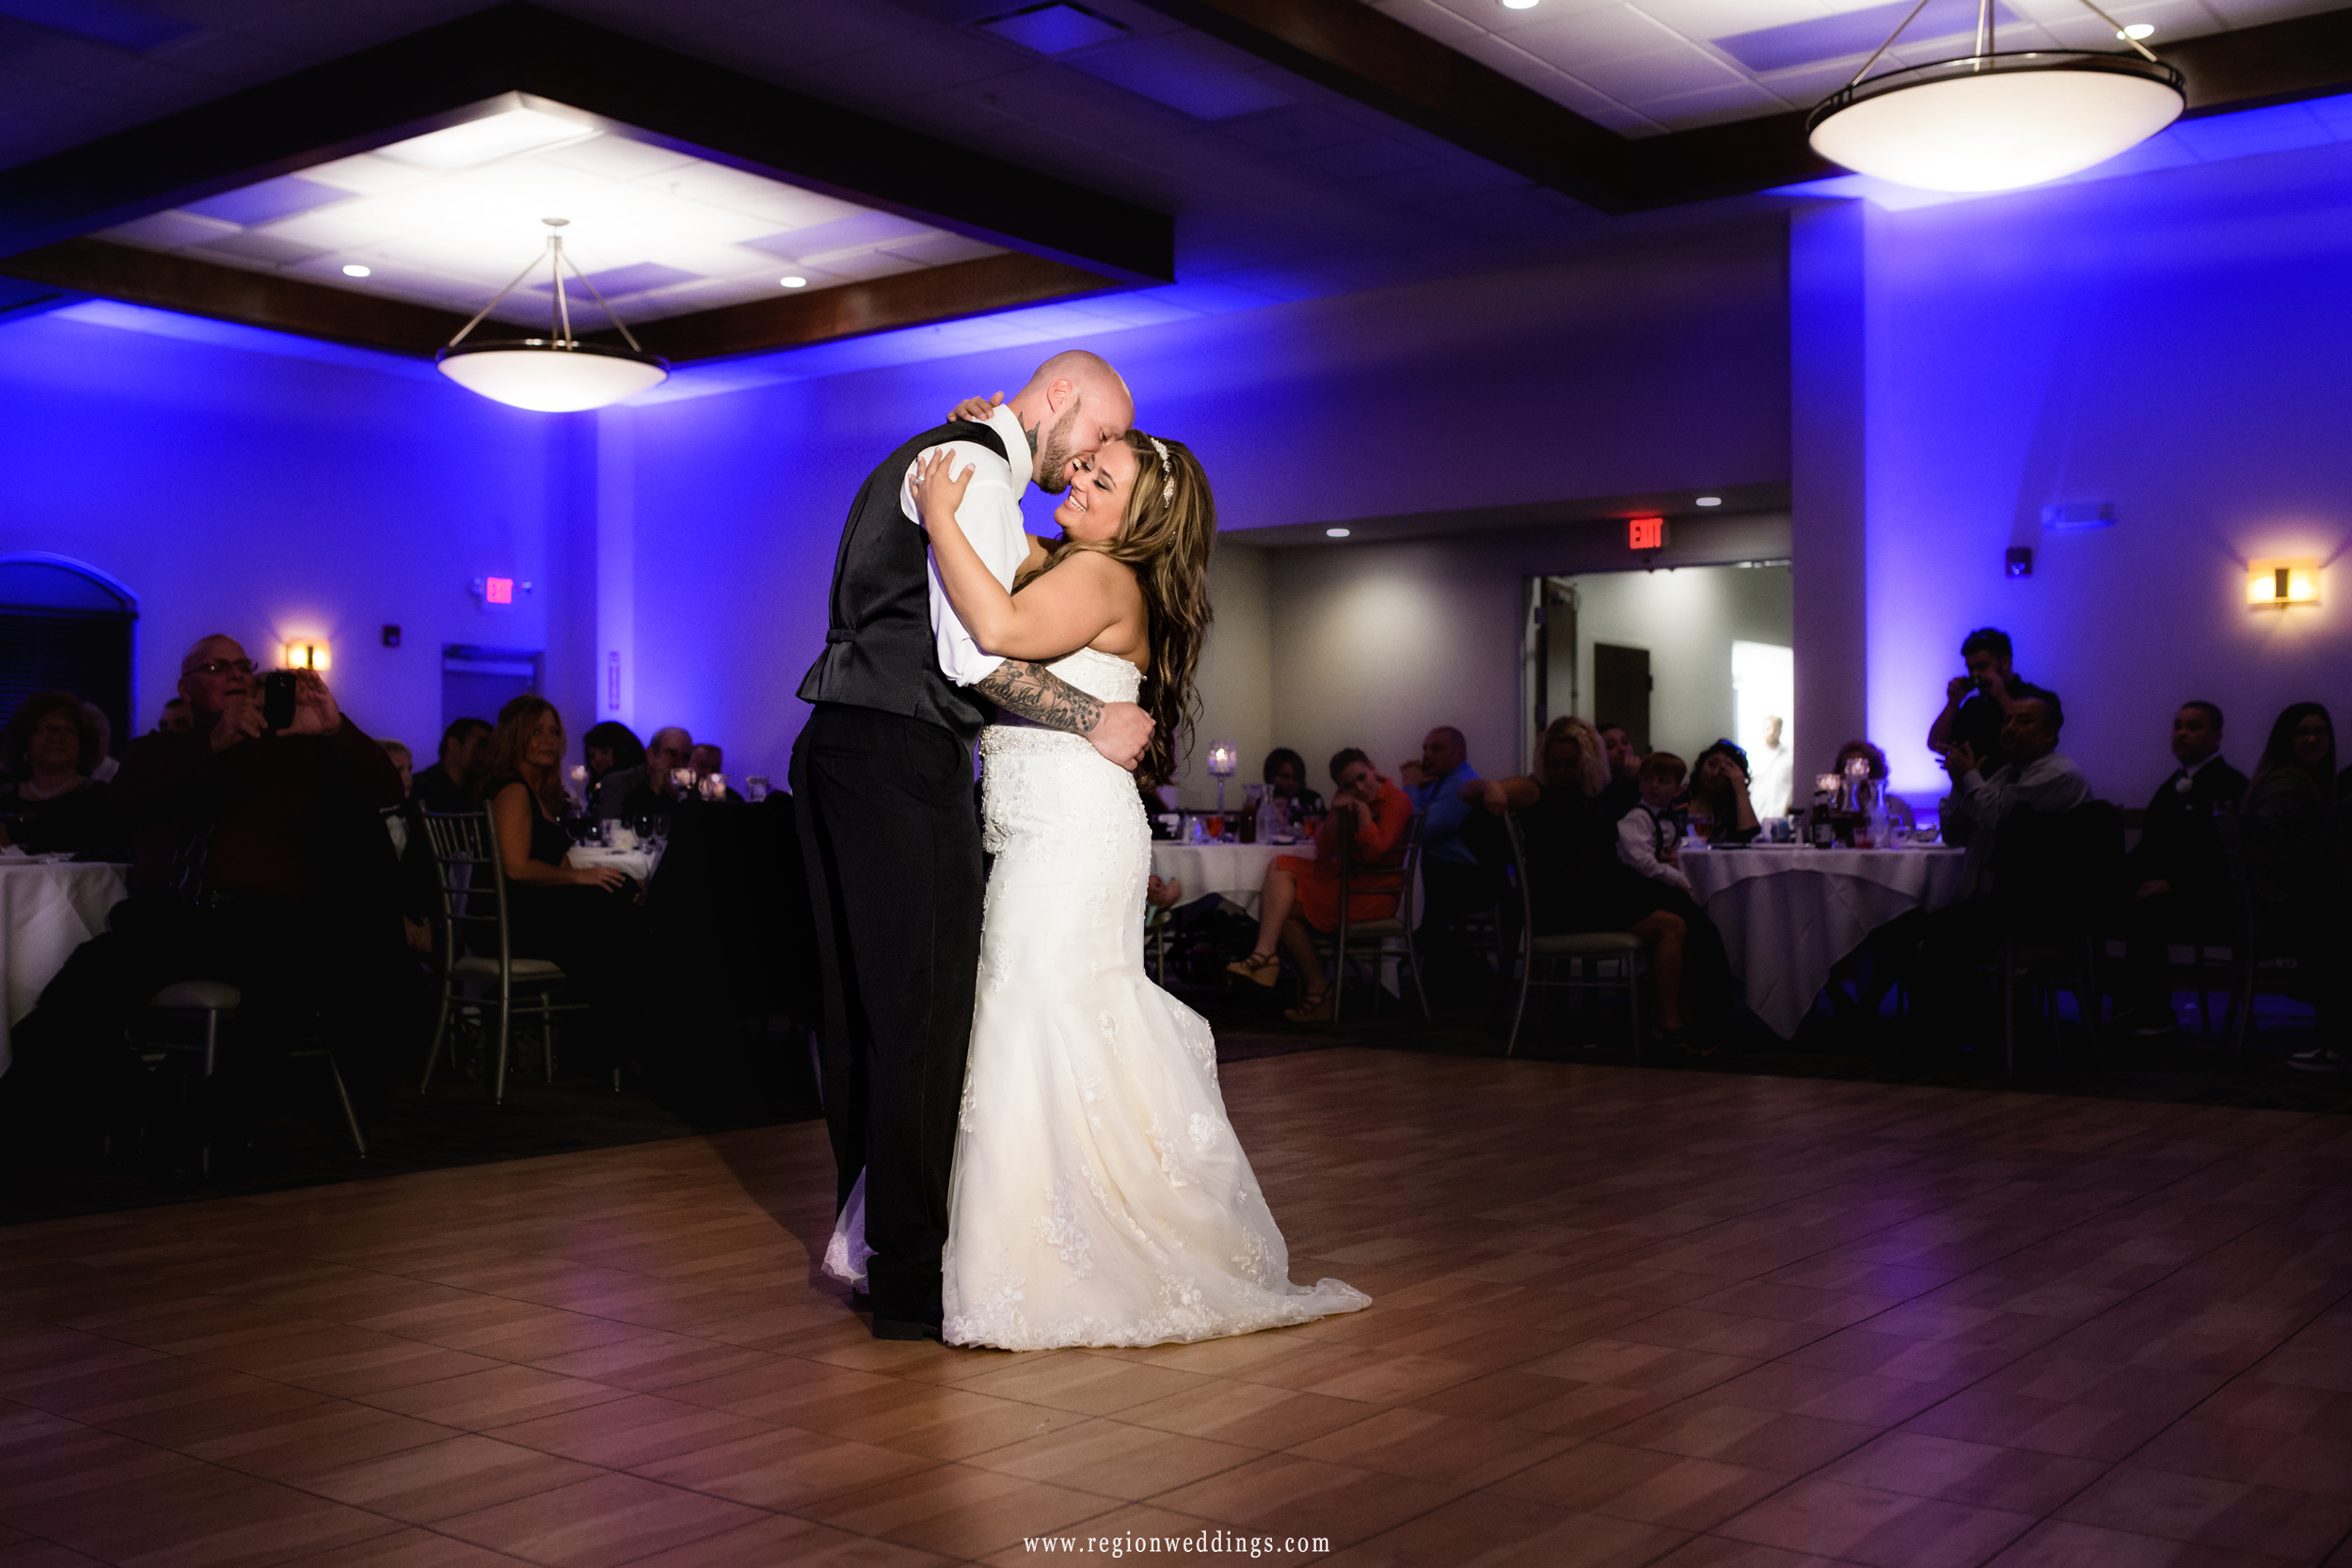 First dance at Signature Banquets.